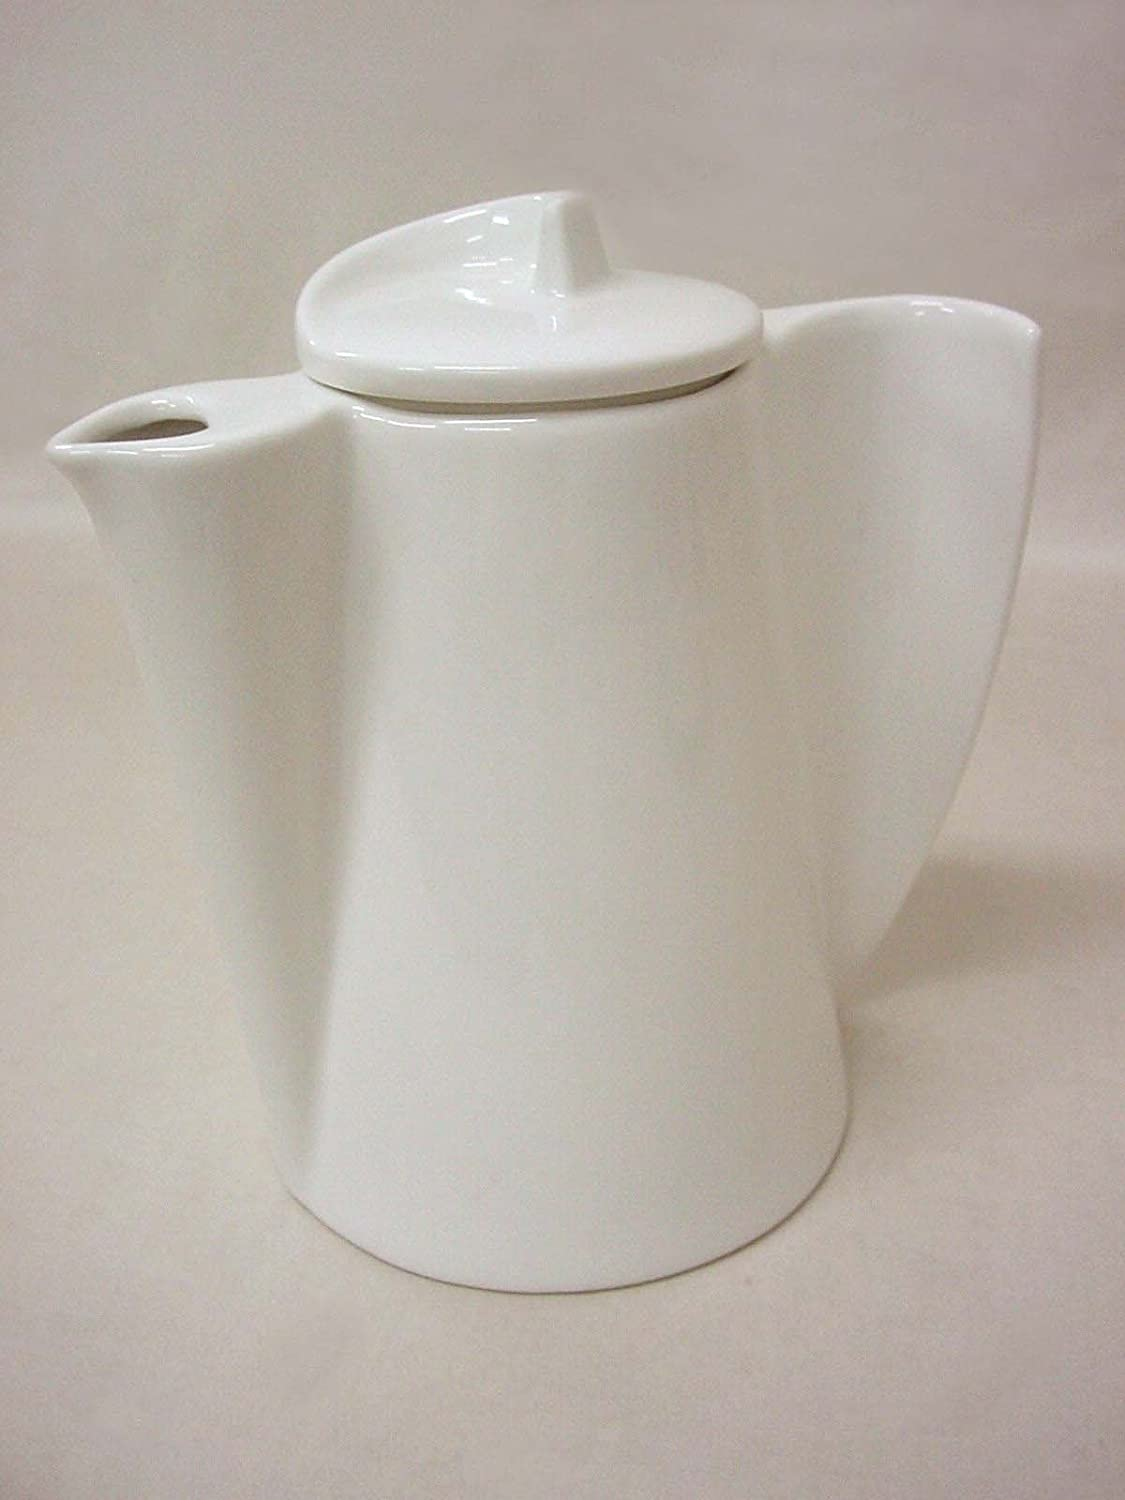 CAFETERA TETERA ONDA 880ML PORCELANA BLANCO: Amazon.es: Hogar